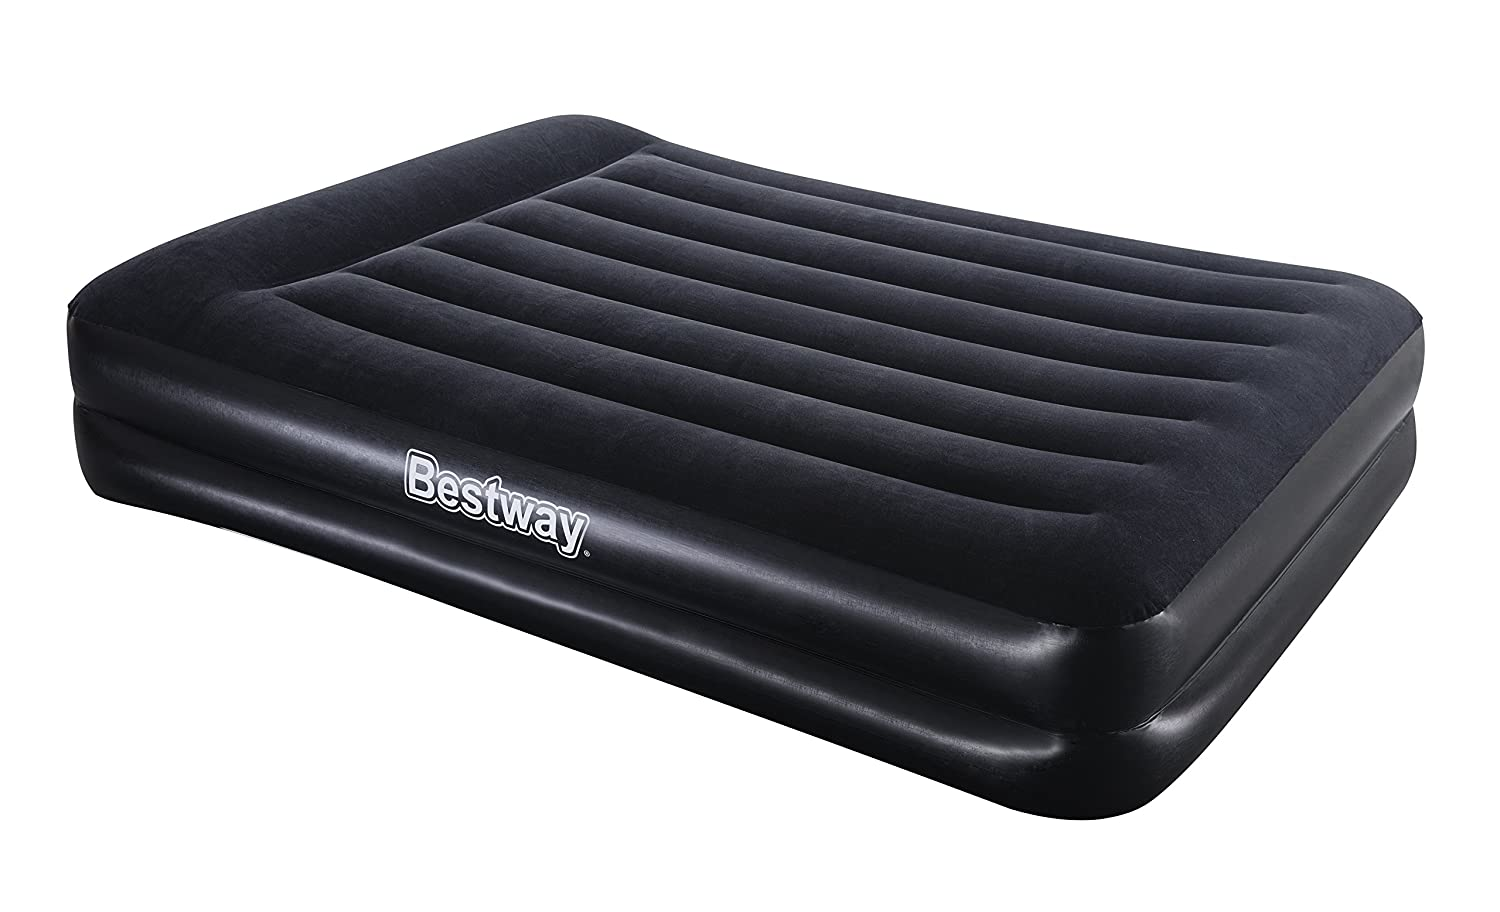 Bestway Airbeds Flocked Aeroluxe Quick Inflation Indoor Air Mattress with Built-In Pump/Pillow and Travel Bag, Black, Queen BW67403GB